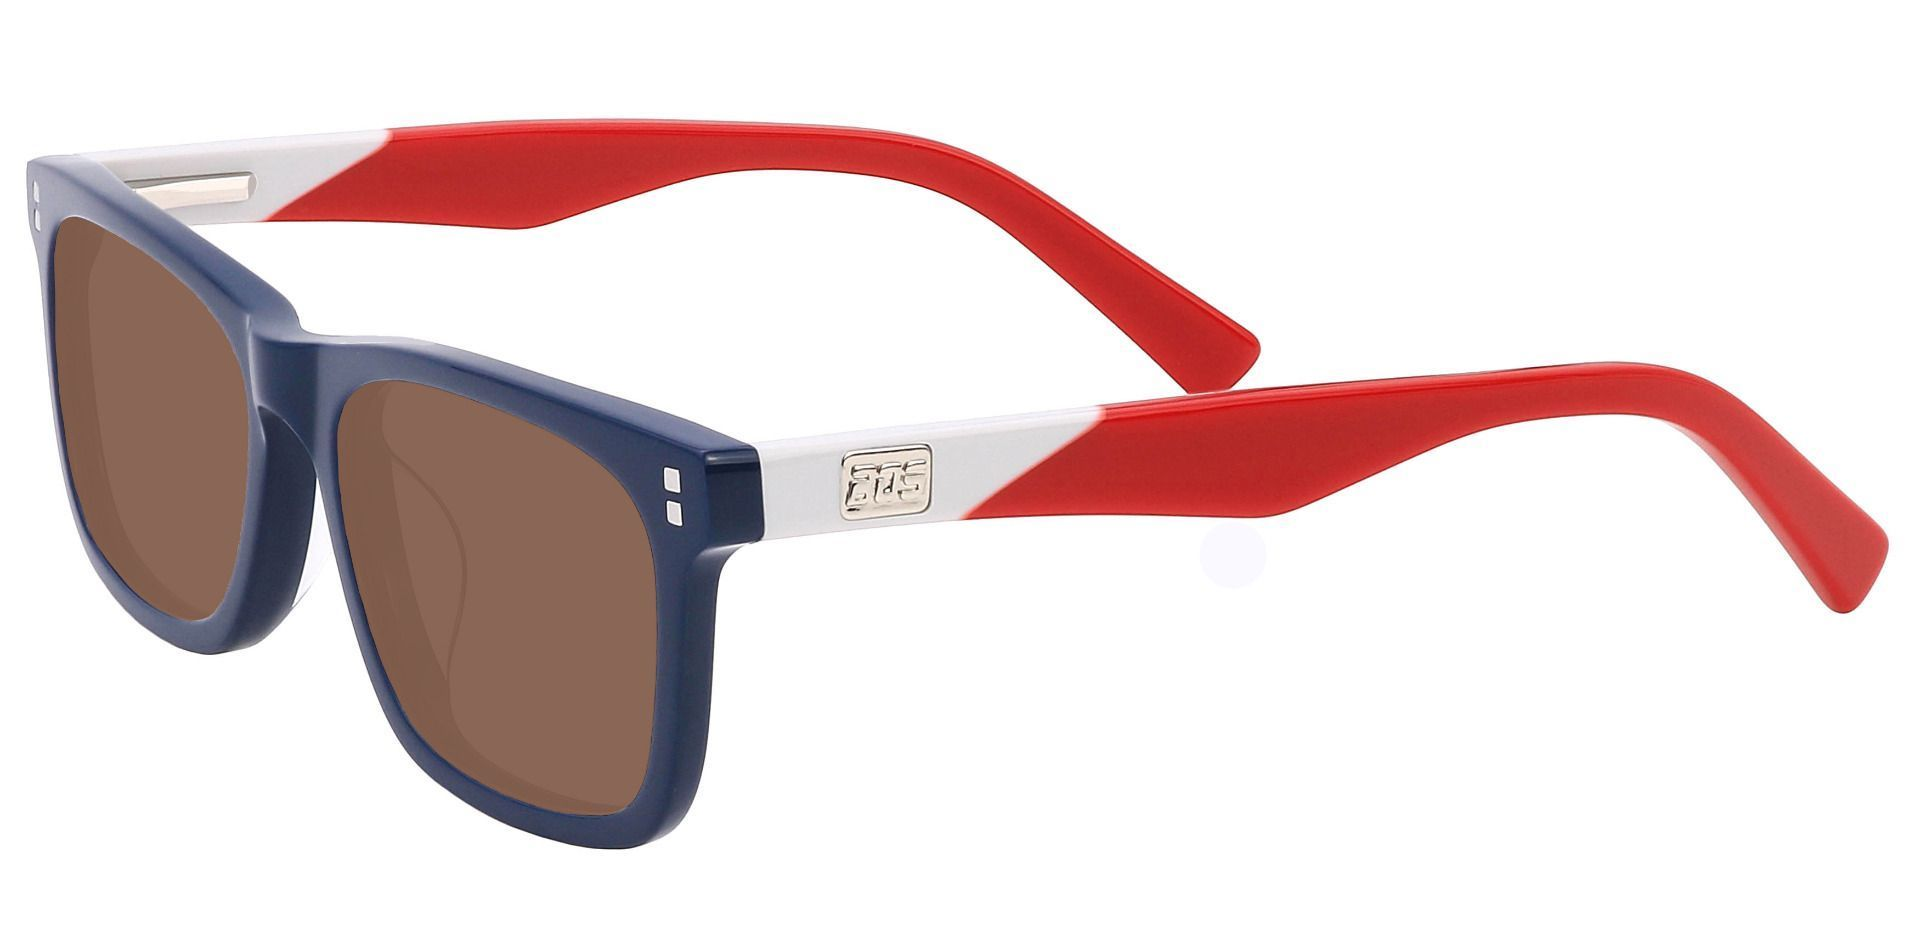 Harbor Rectangle Reading Sunglasses - Blue Frame With Brown Lenses